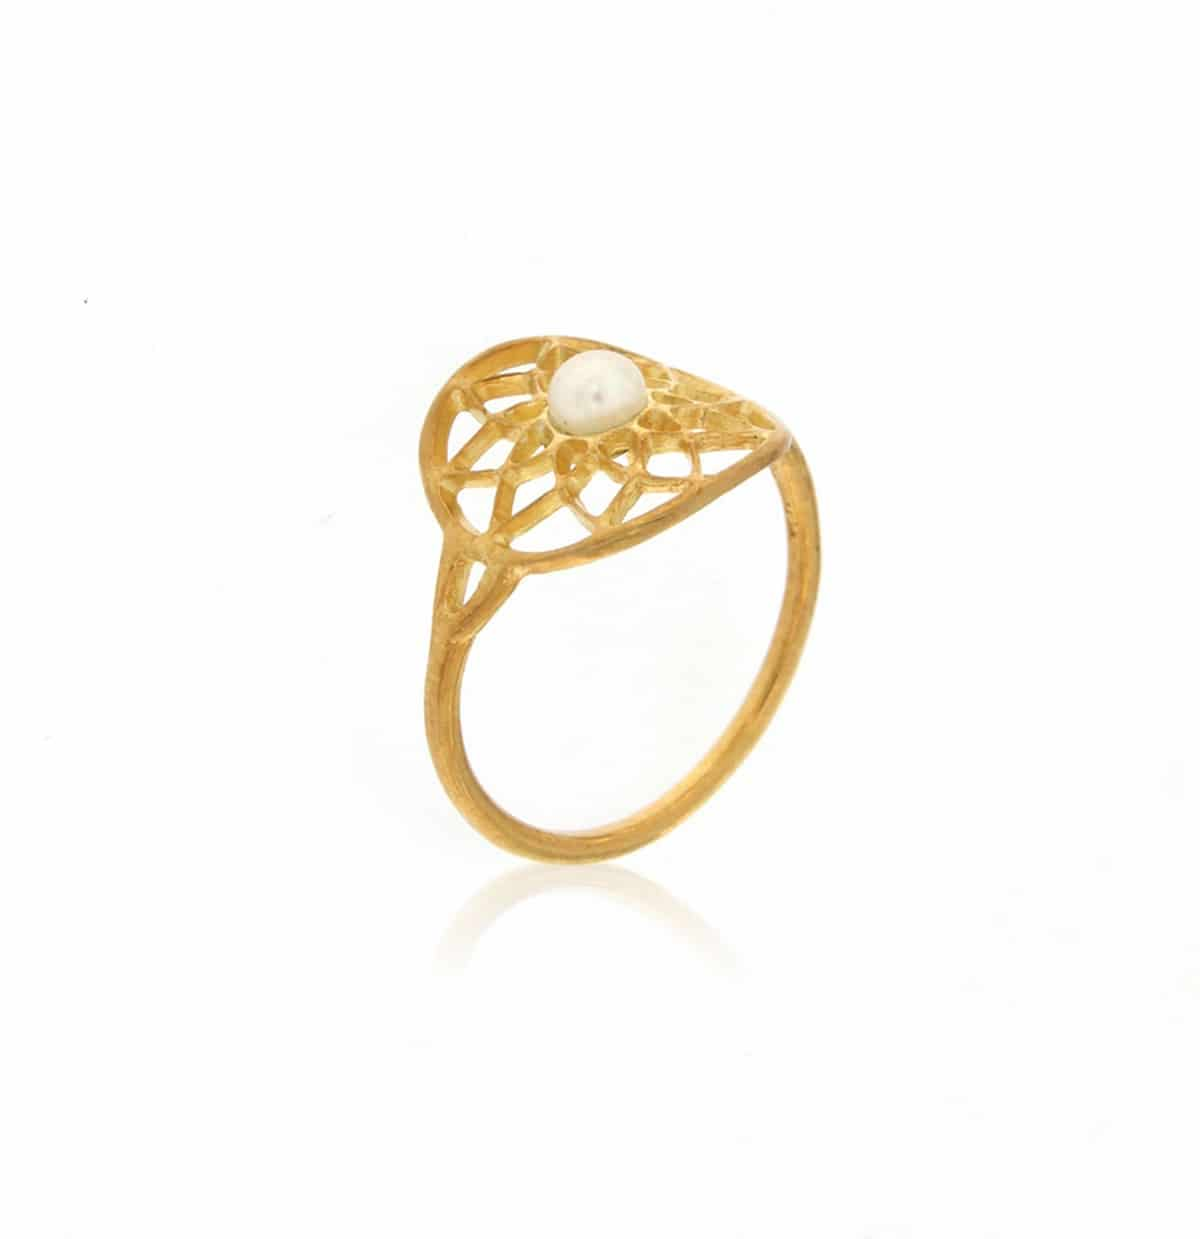 Mandala gold plated silver Ring with a natural white pearl